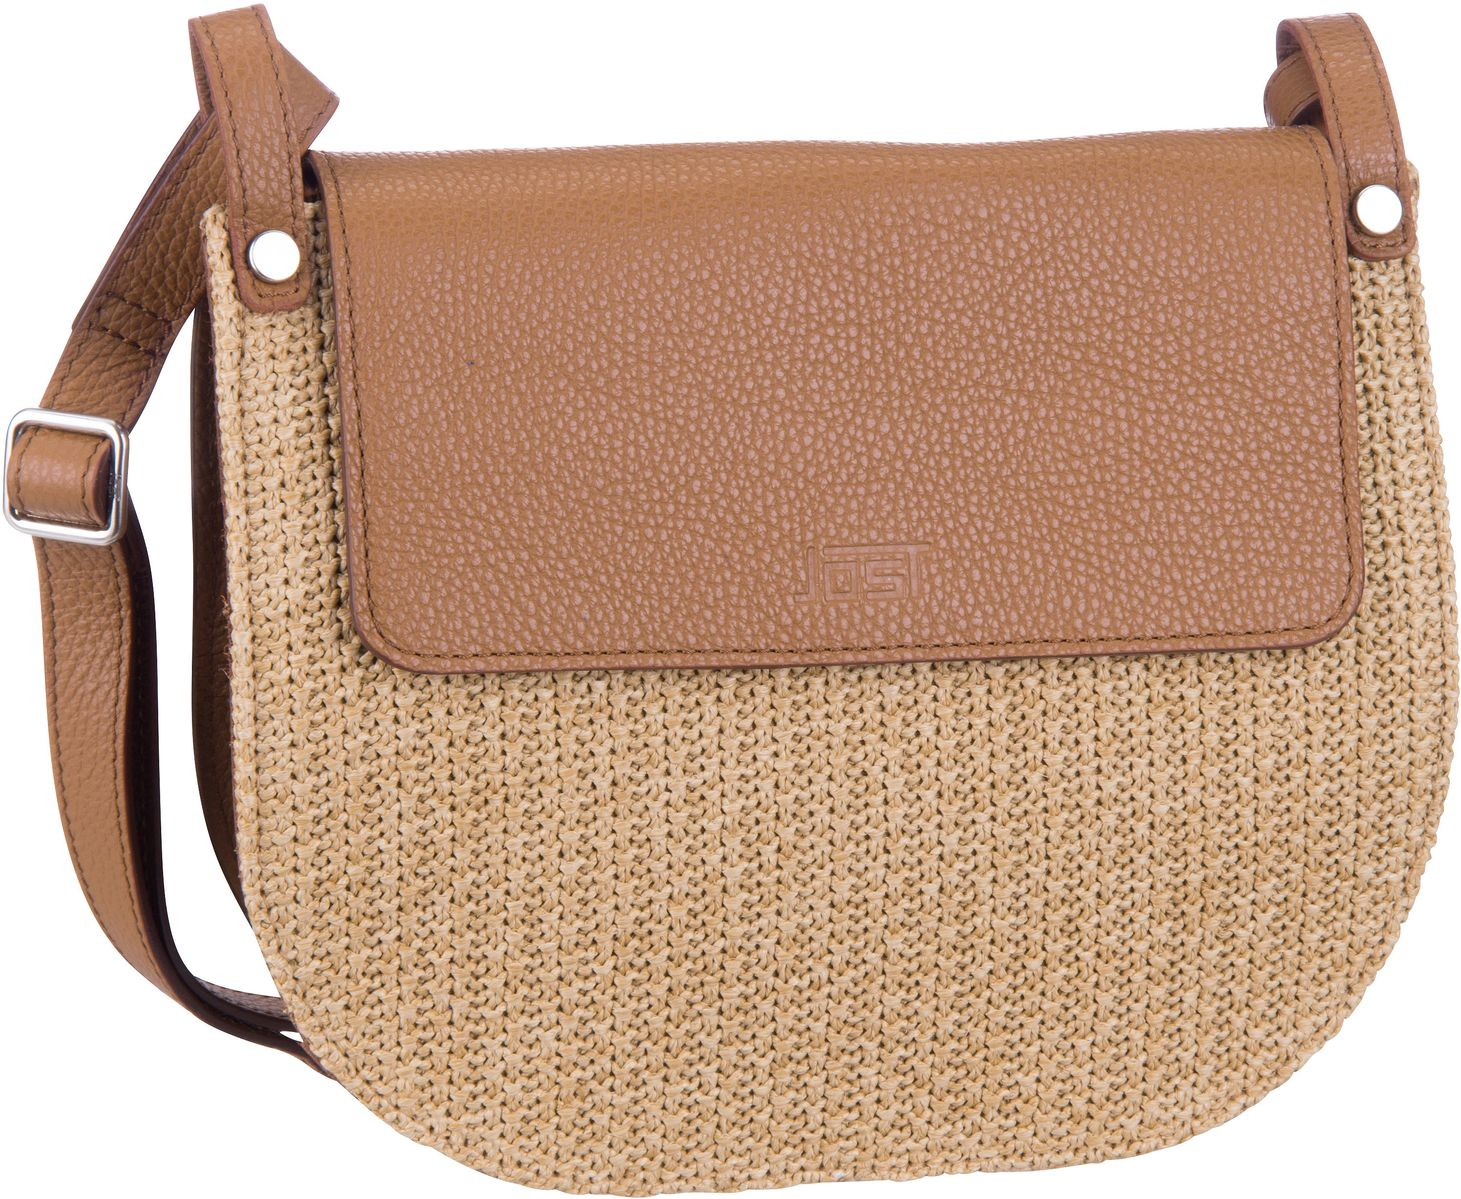 Umhängetasche Hiru 3548 Shoulder Bag Natur